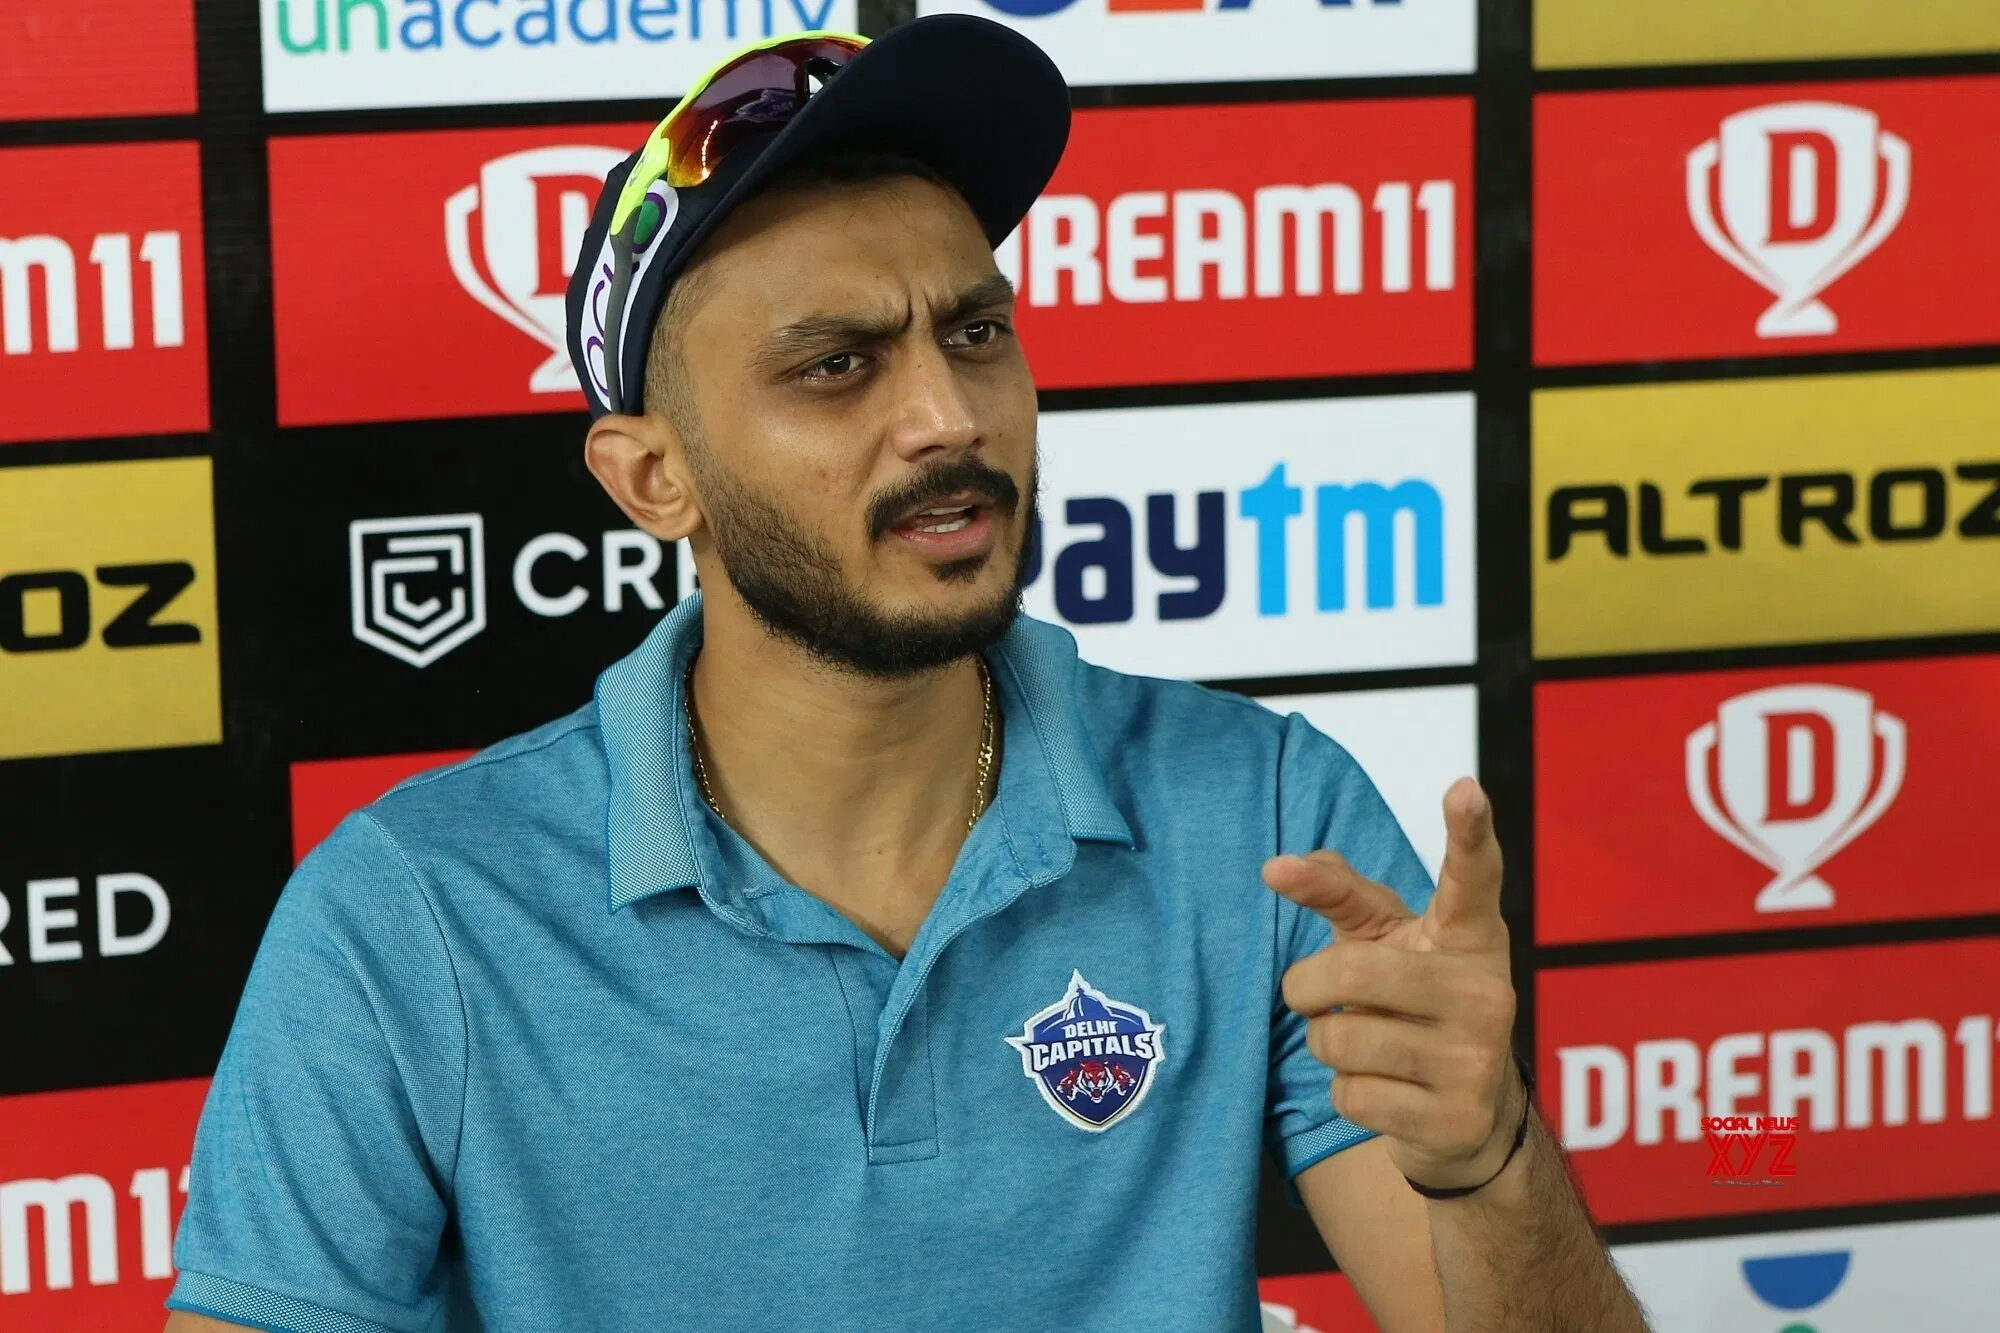 Axar Patel tests positive for Covid-19